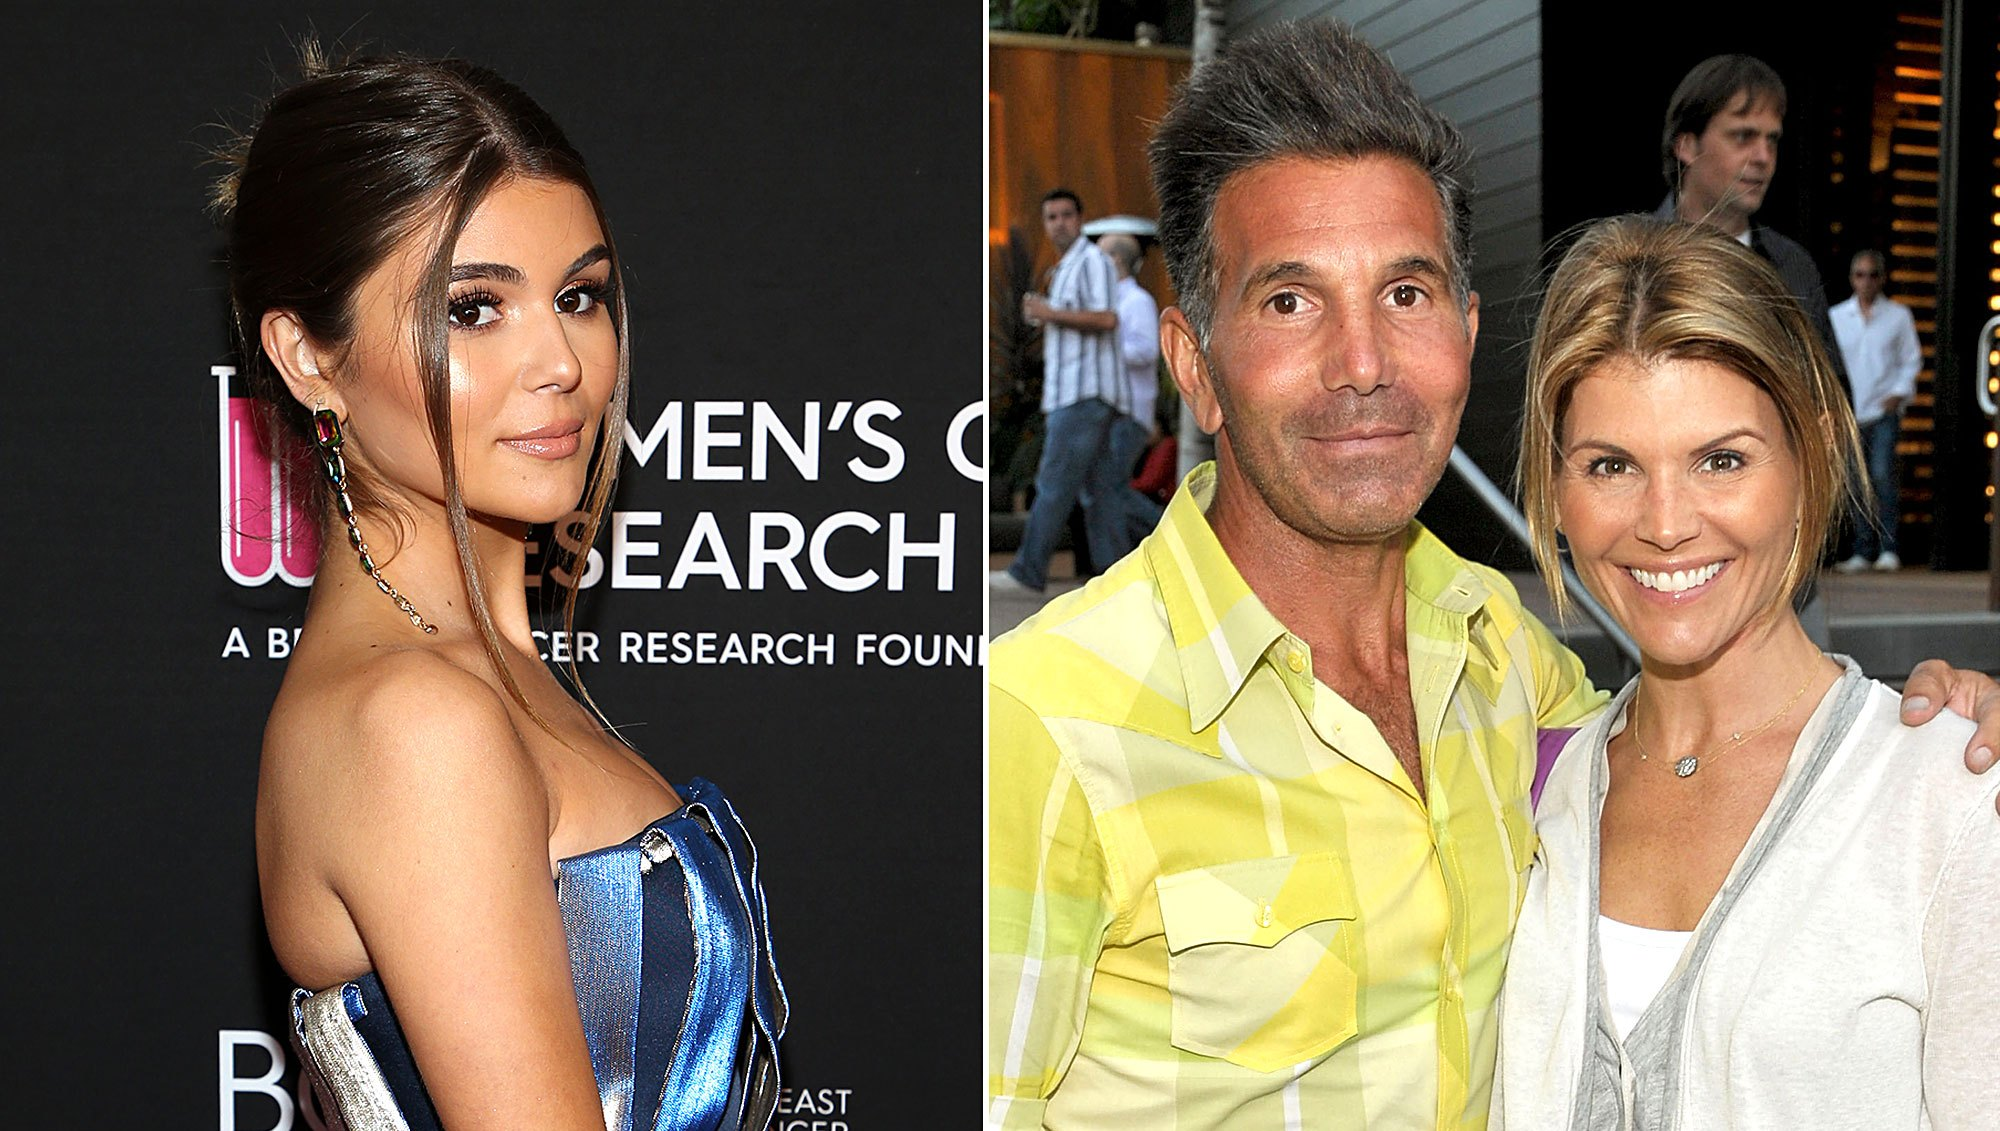 Olivia Jade 'Blames' Her Parents for 'Downfall of Her Career' After Scandal